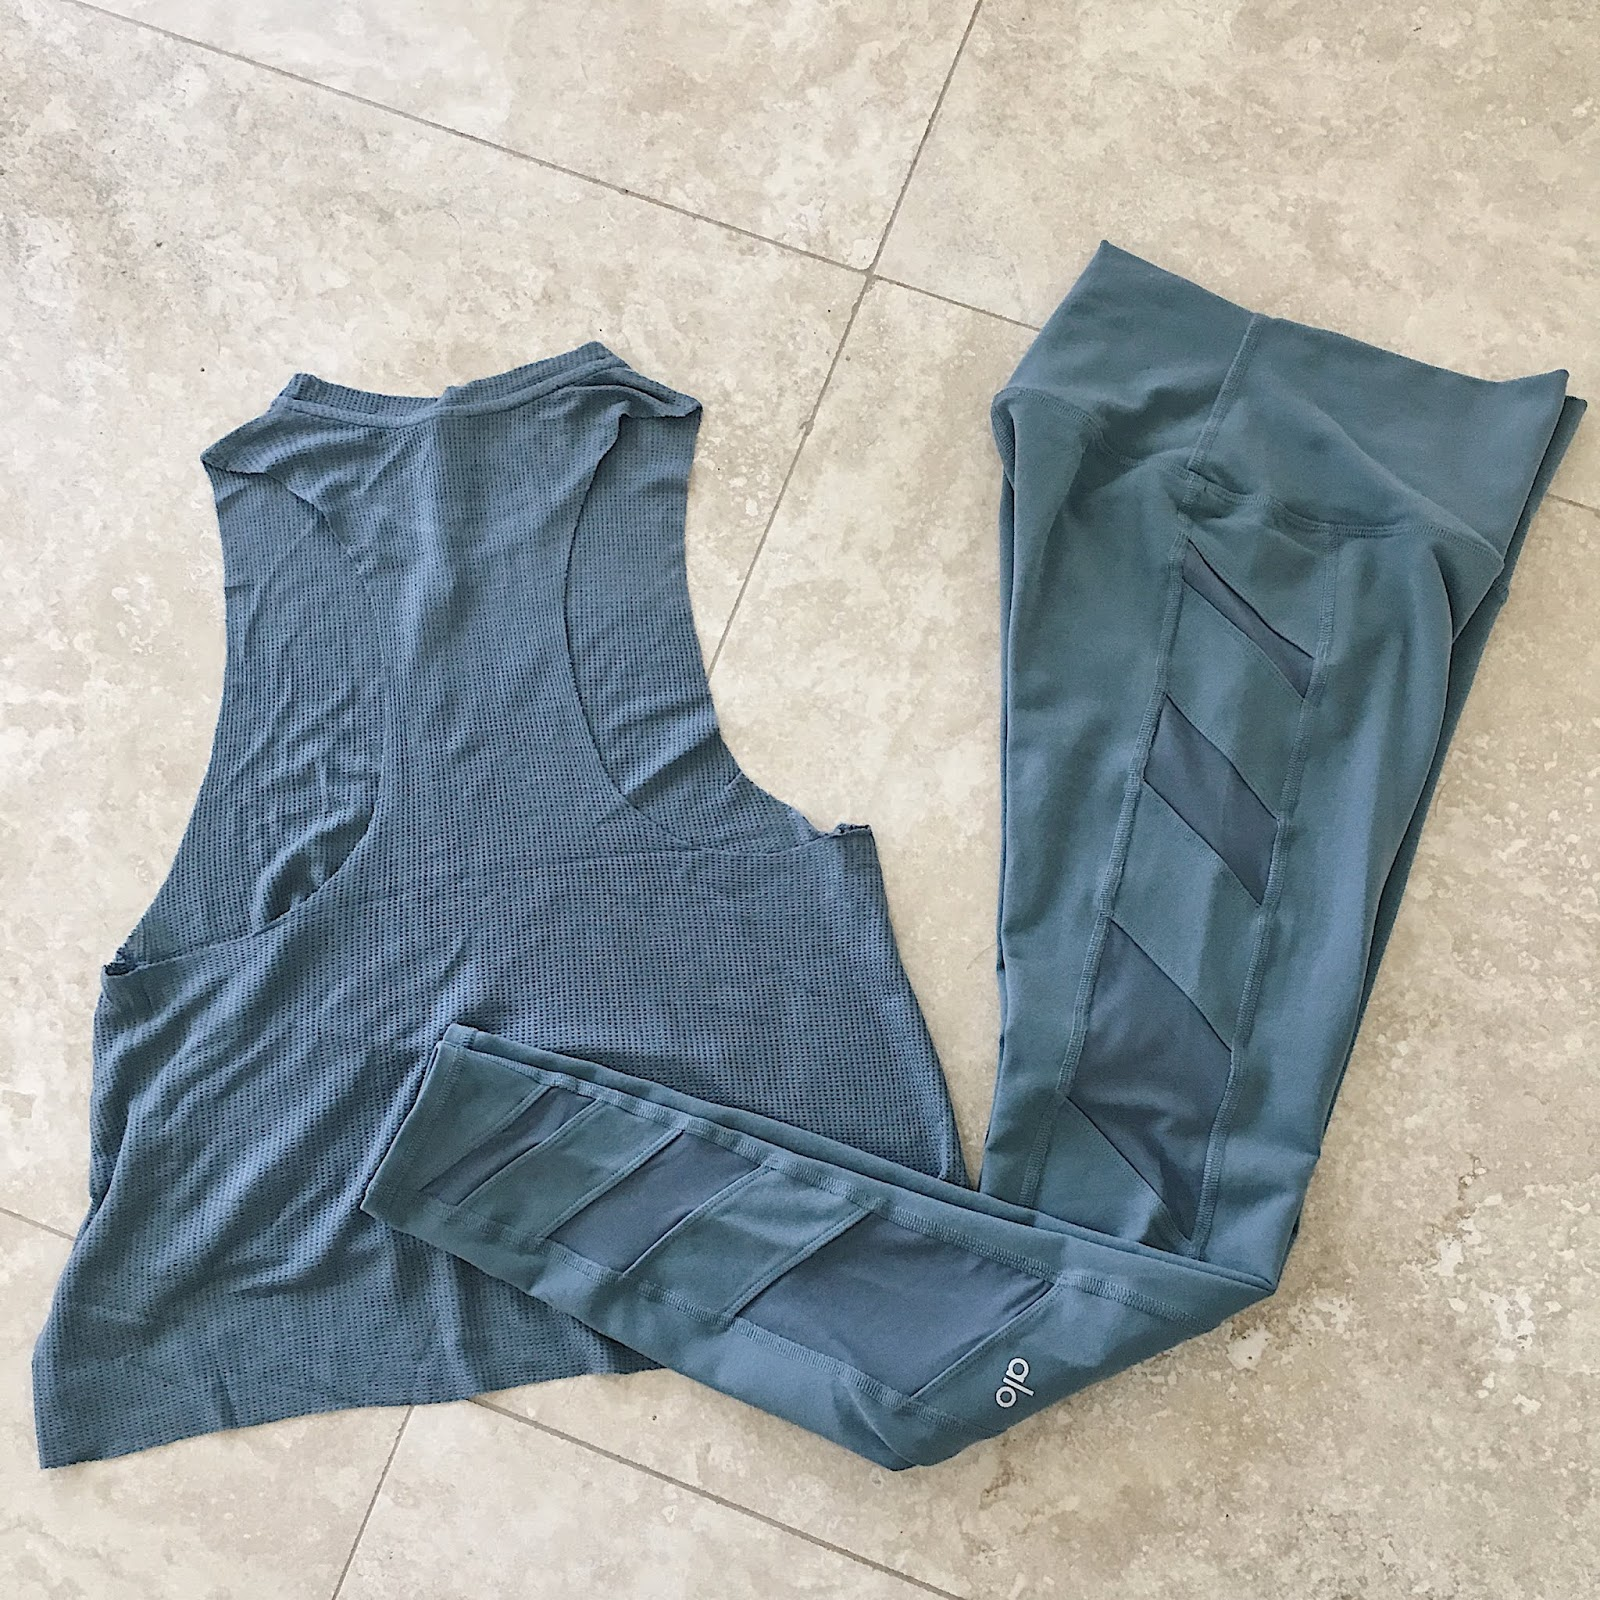 monochromatic workout set